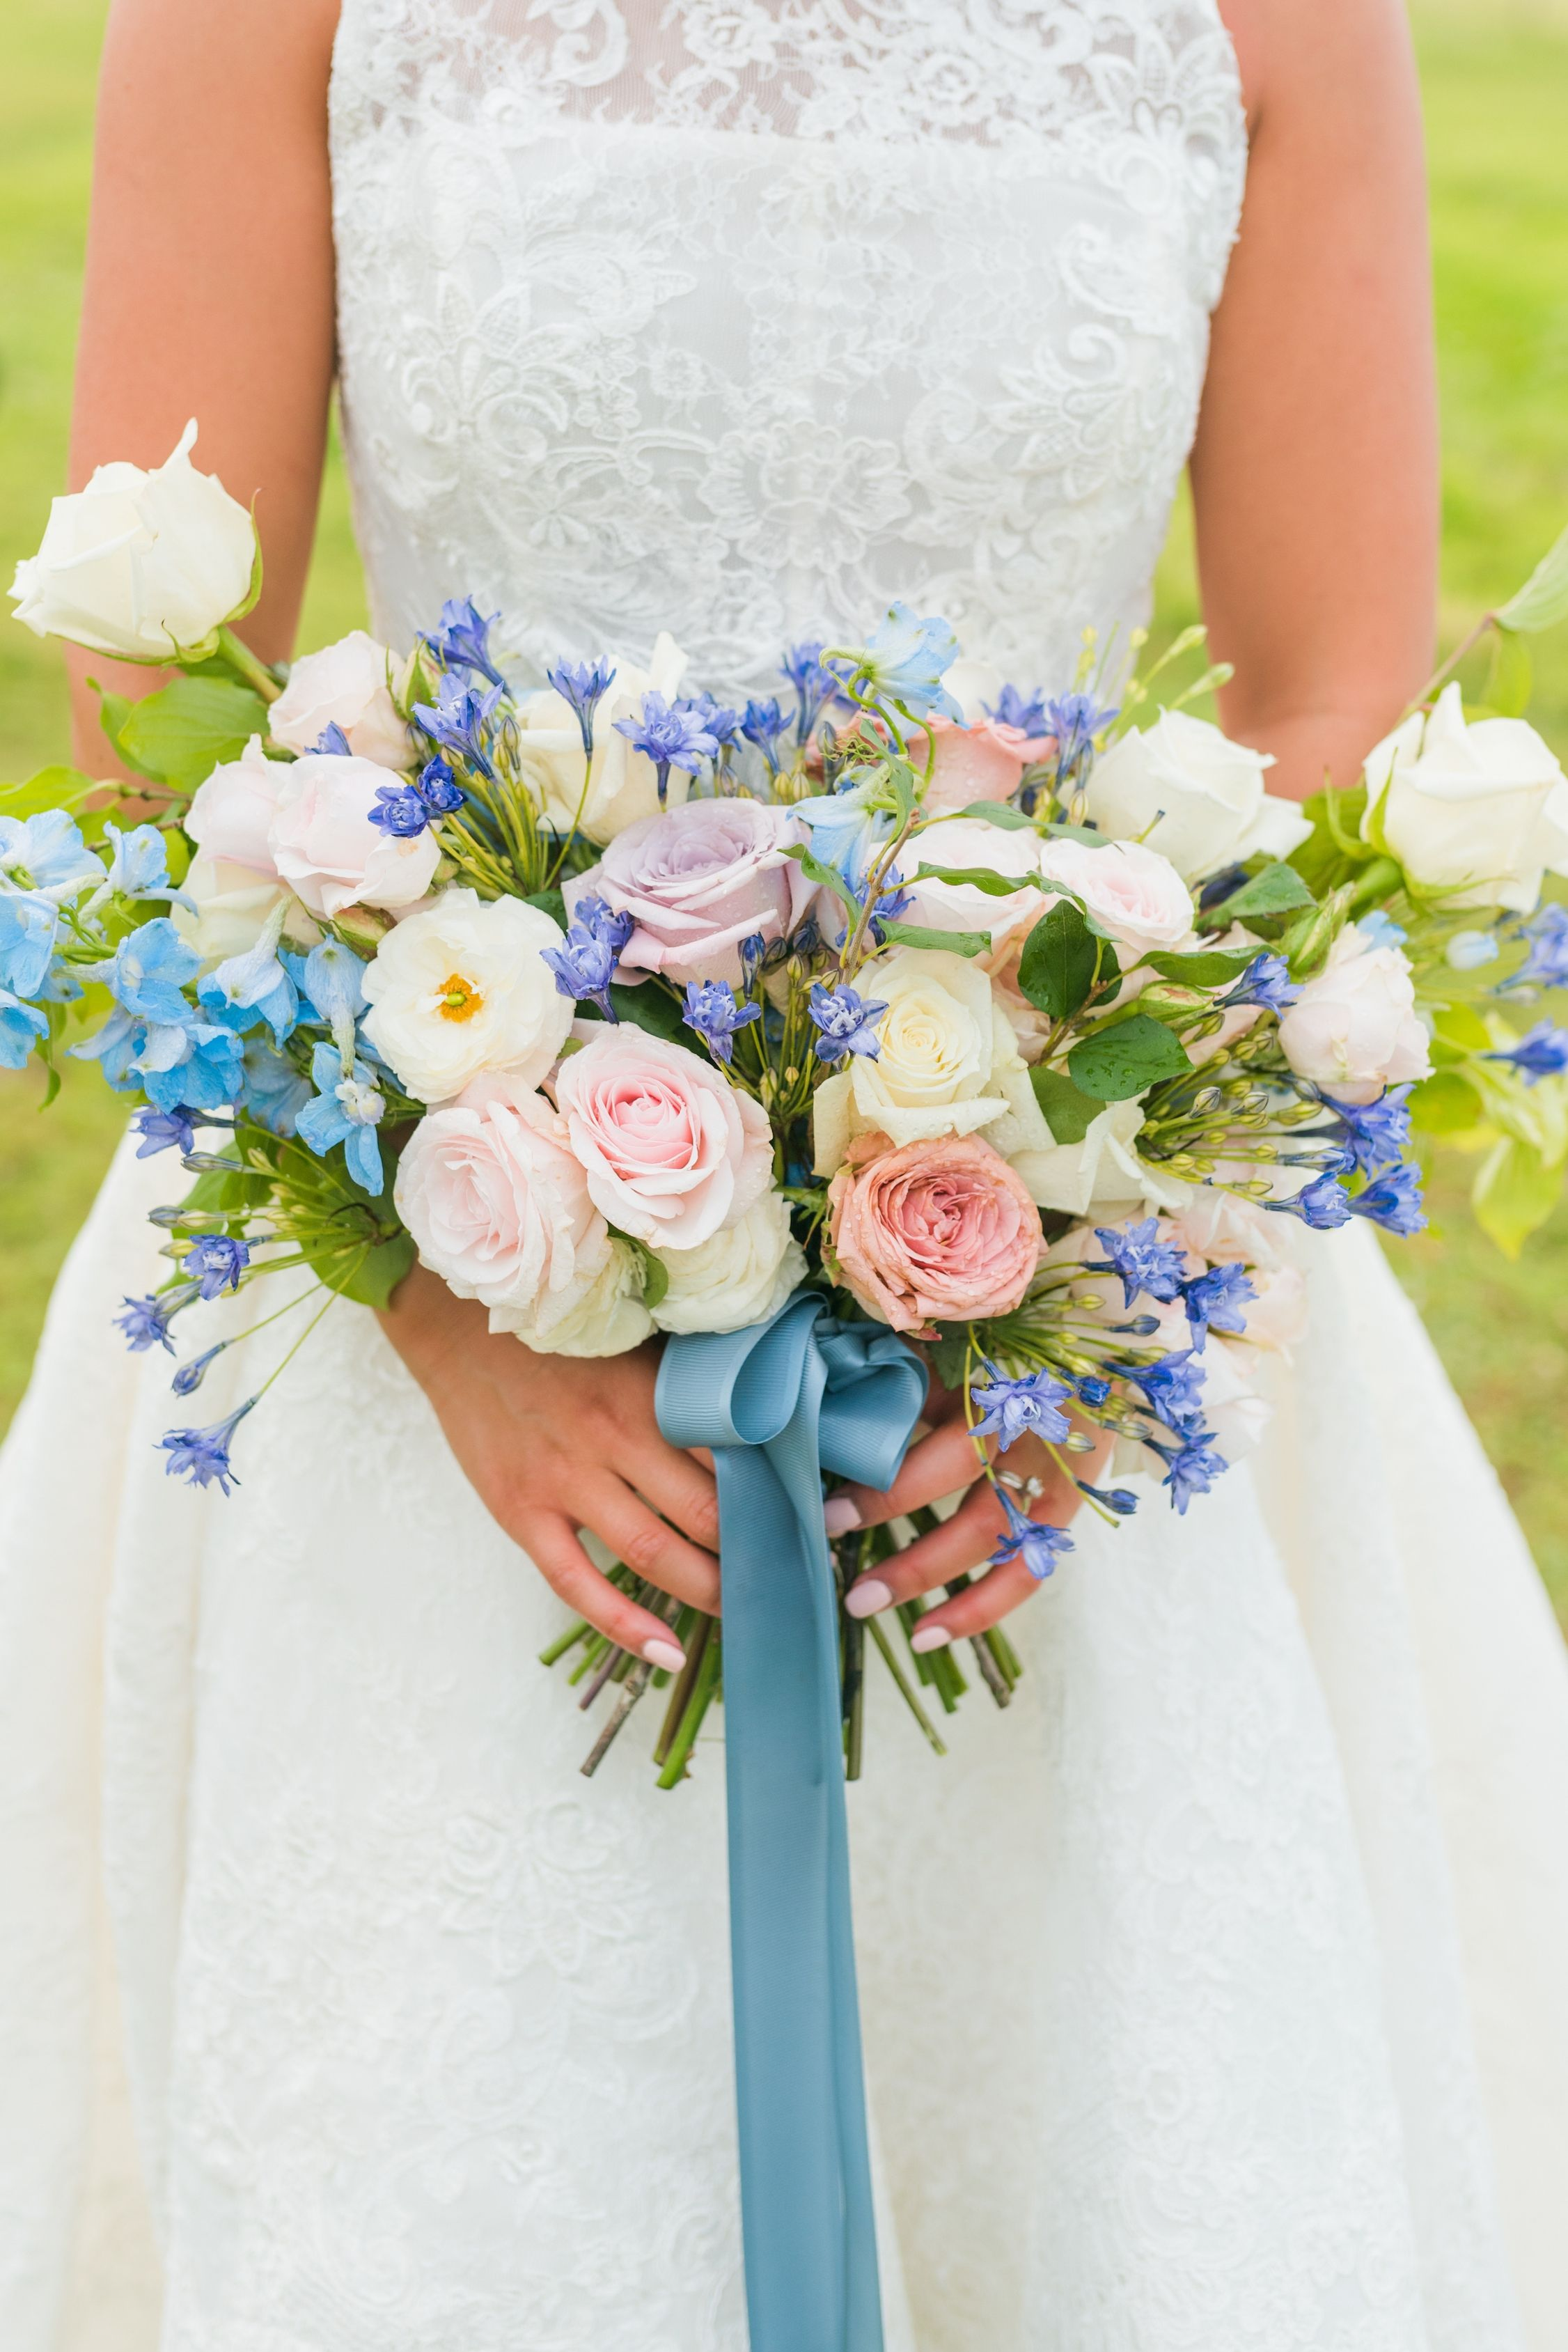 Love mixing shades of blues! Beautiful blooms and with our ribbon💙  Photography: @ashtonkelleyphotography Host: @styledshootsacrossamerica Planning & design: @heatherbengeevents Florals: @intrigueteaches Venue: @woodsedgefarmevents Asst. coordinator: @larueevents  #bridebook #floralstylist #floristlife #floristsofinstagram #eventflorist #flower_igers #eventflowers #flowersmakemehappy #flowersofinstagram #flowersoftheday #fortheloveofflowers #lionribbon #ribbon #offray #offrayribbon